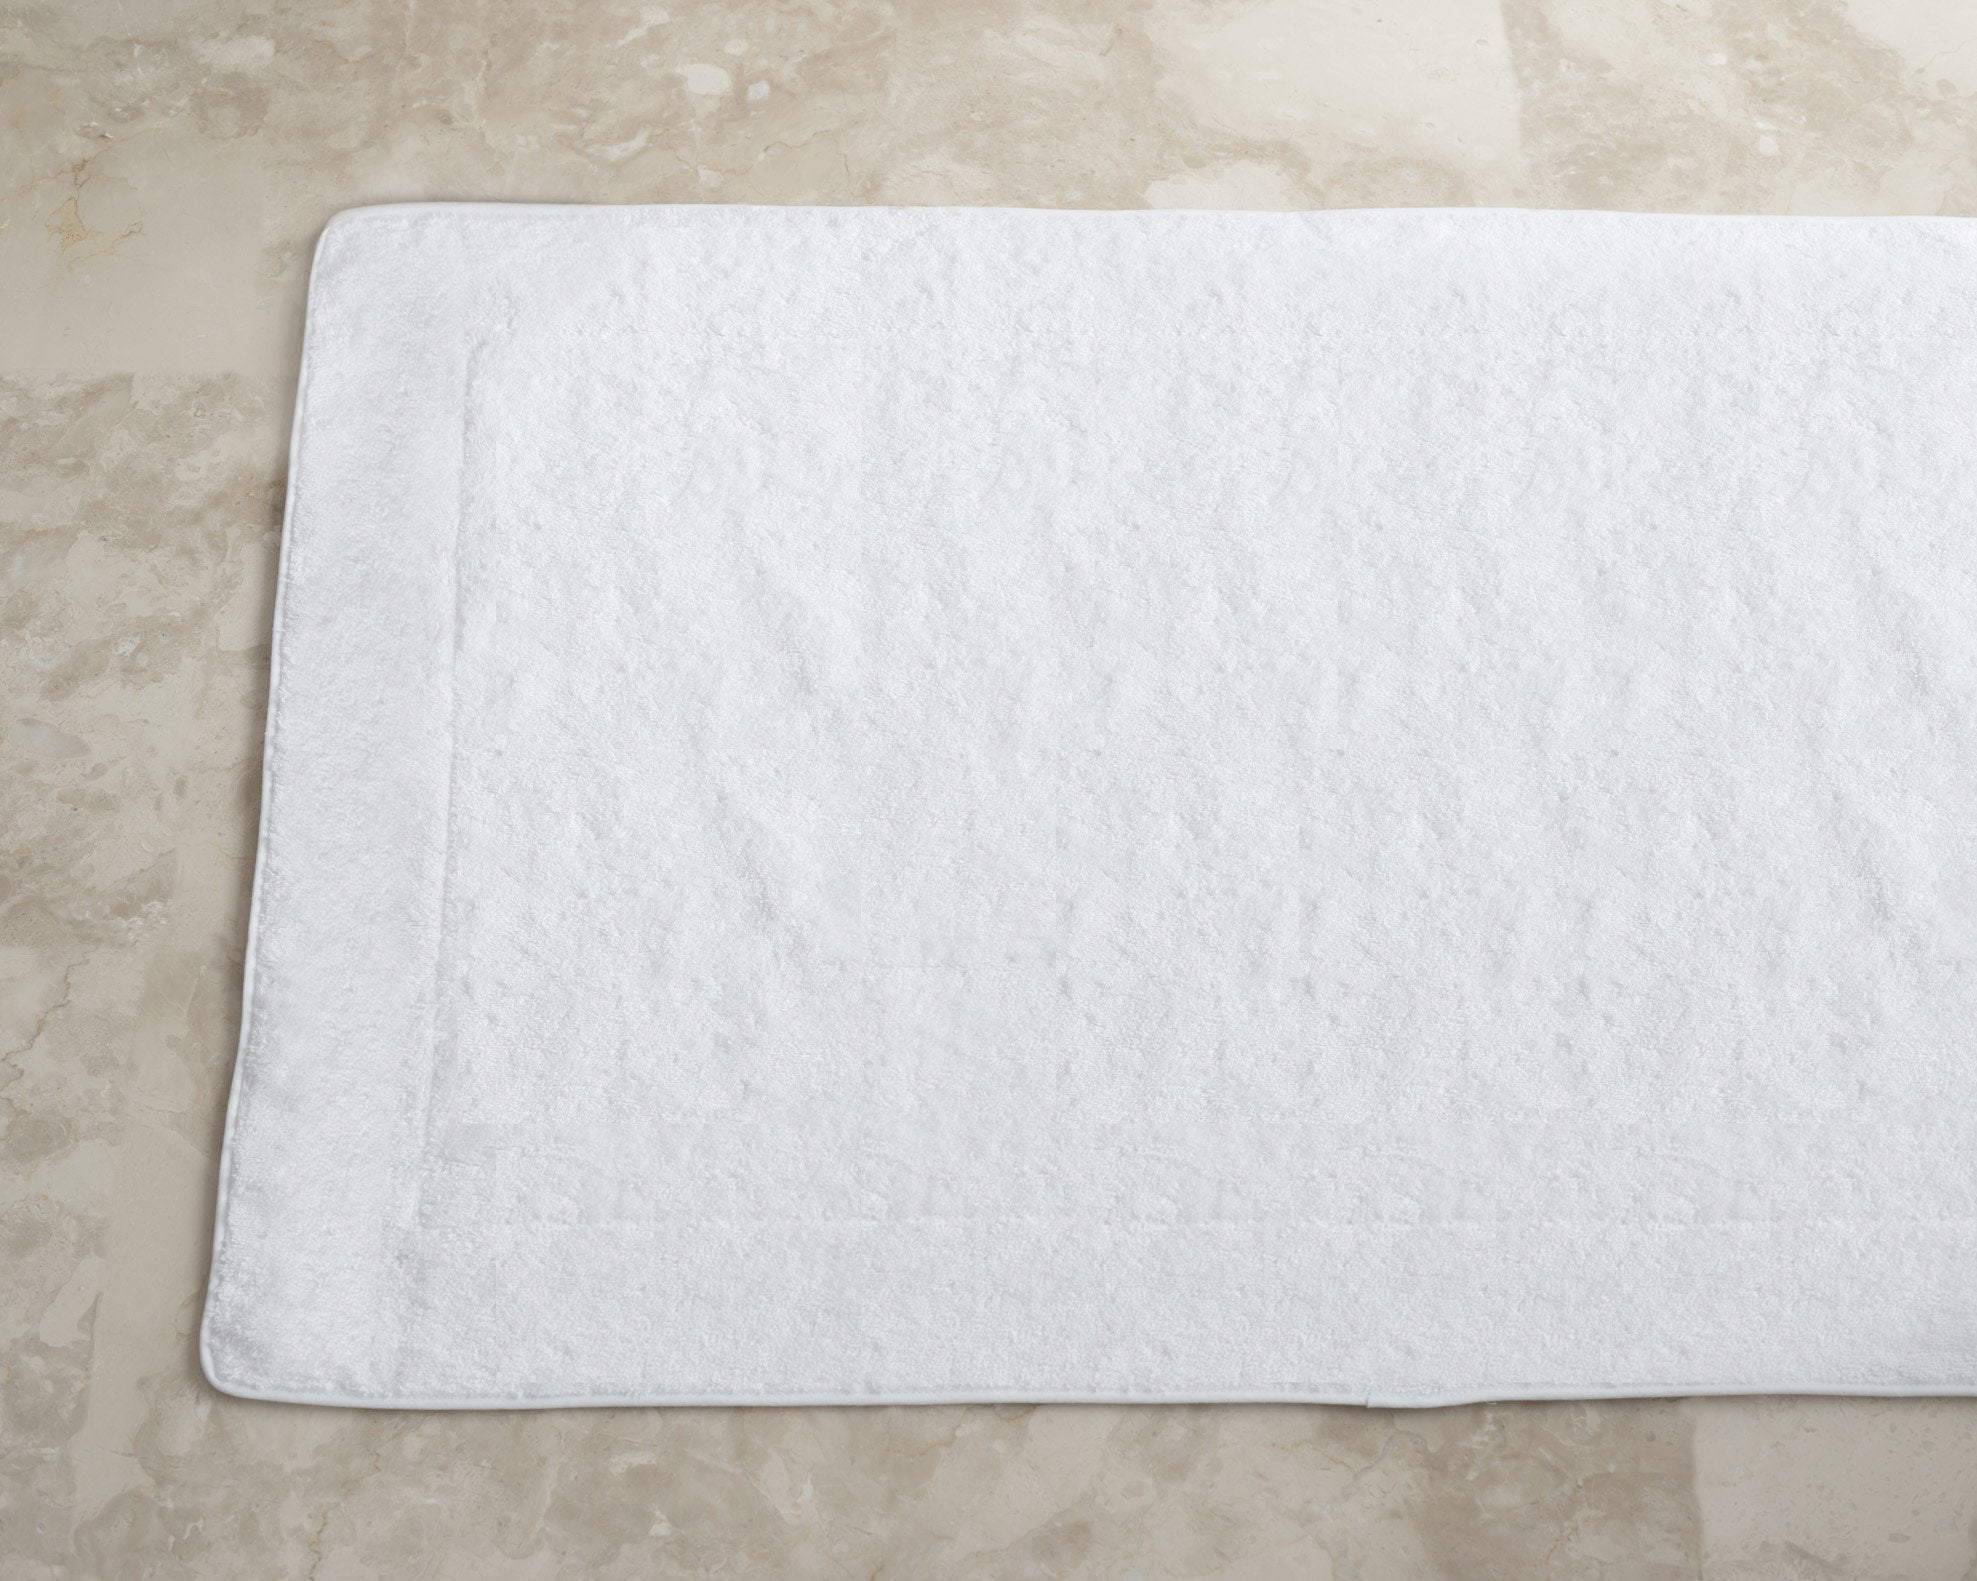 Cairo Tub Bath Mat White Product Image 1